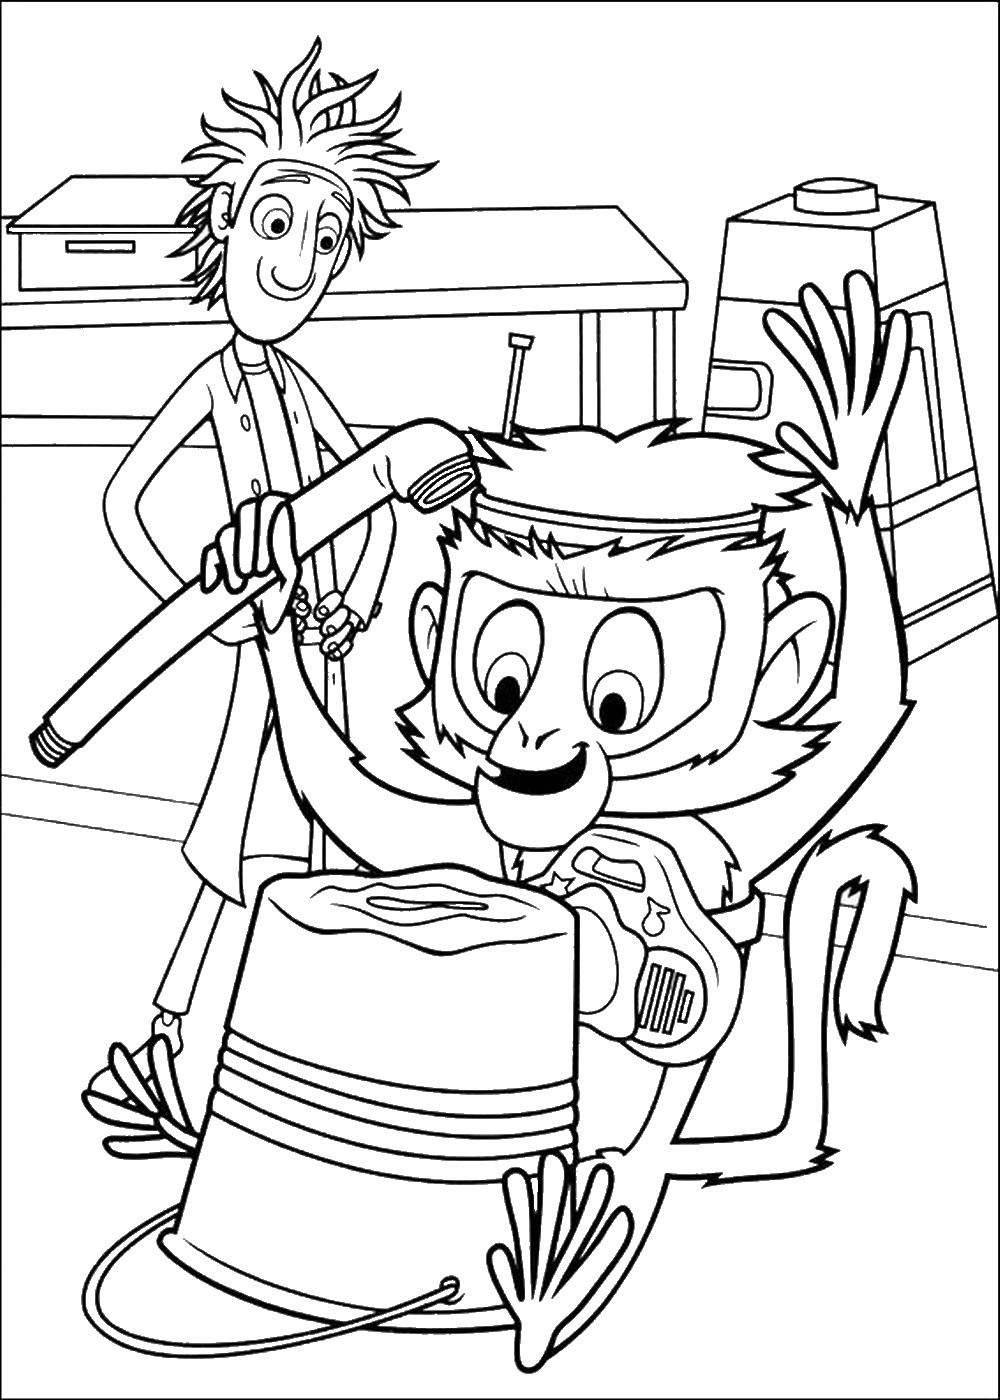 cloudy with a chance of meatballs 2 coloring pages cloudy with a chance of meatballs coloring pages for kids 2 chance of with coloring a cloudy pages meatballs